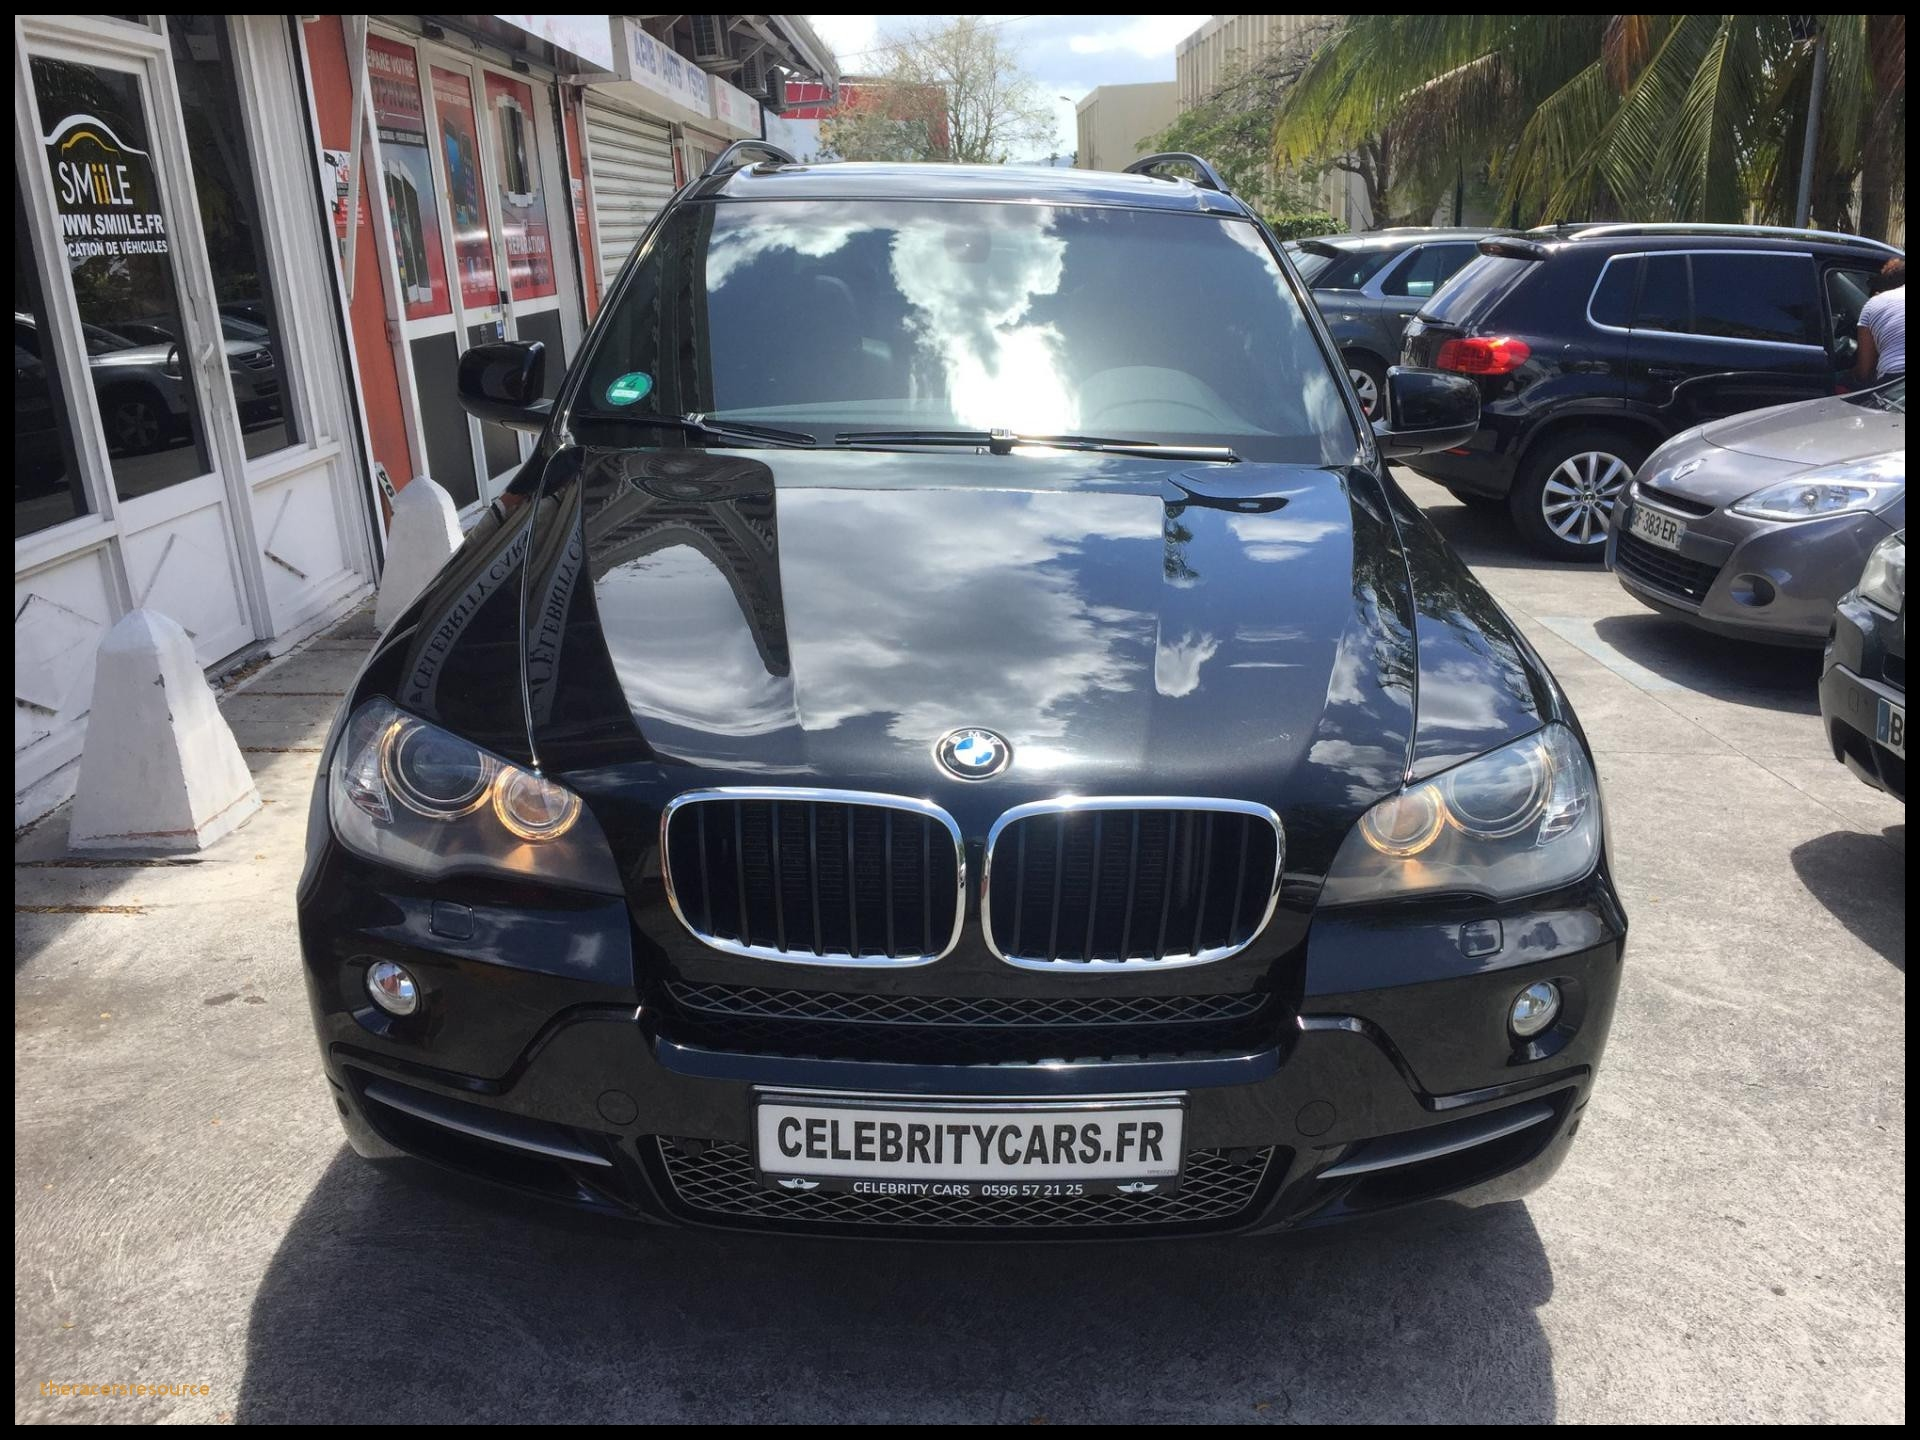 Bmw Service Center Locator Awesome Location De Moto A Paris Best Bmw X5 3 0d Executive